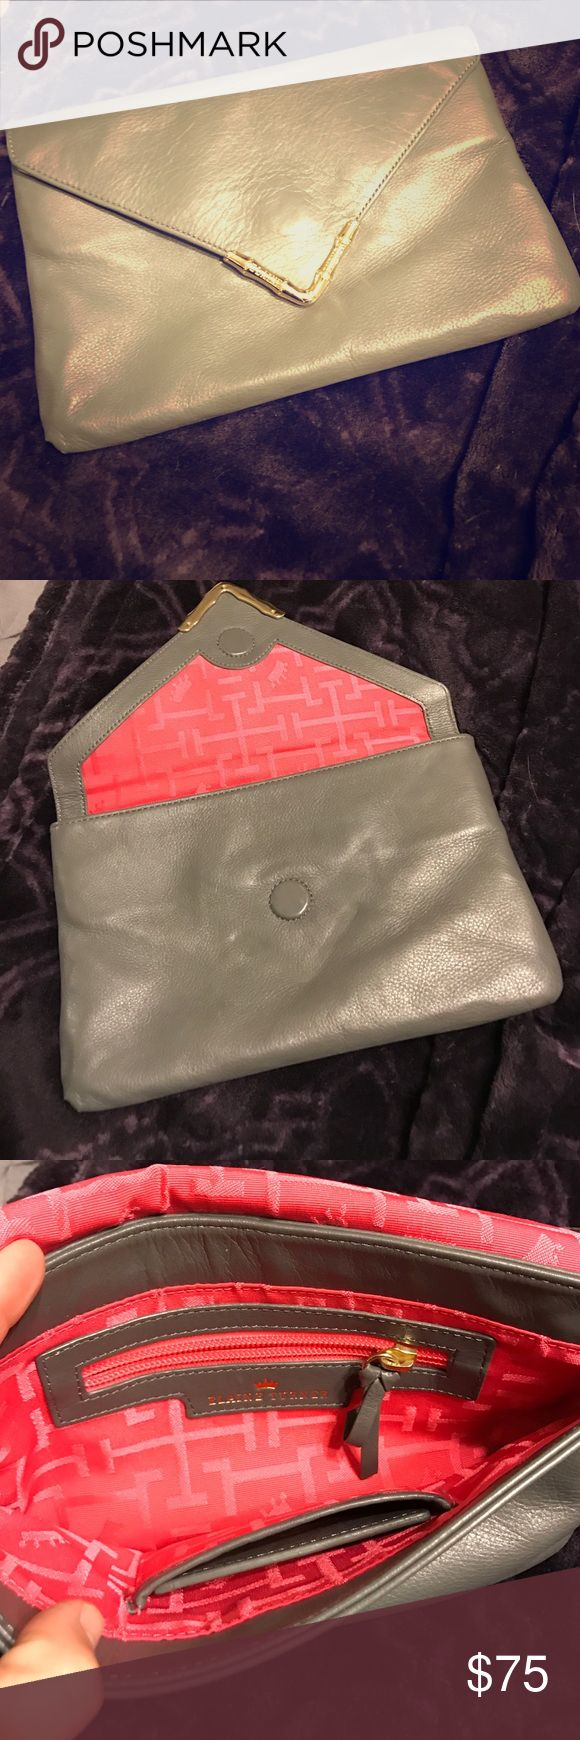 Elaine Turner Grey Clutch! Elaine Turner Grey Clutch-slightly used, normal wear. No tears or stains. Grey in color with magnet closing. Inside is hot pink. Small mirror included in size pocket. Great for every day use or a night out! Elaine Turner Bags Clutches & Wristlets